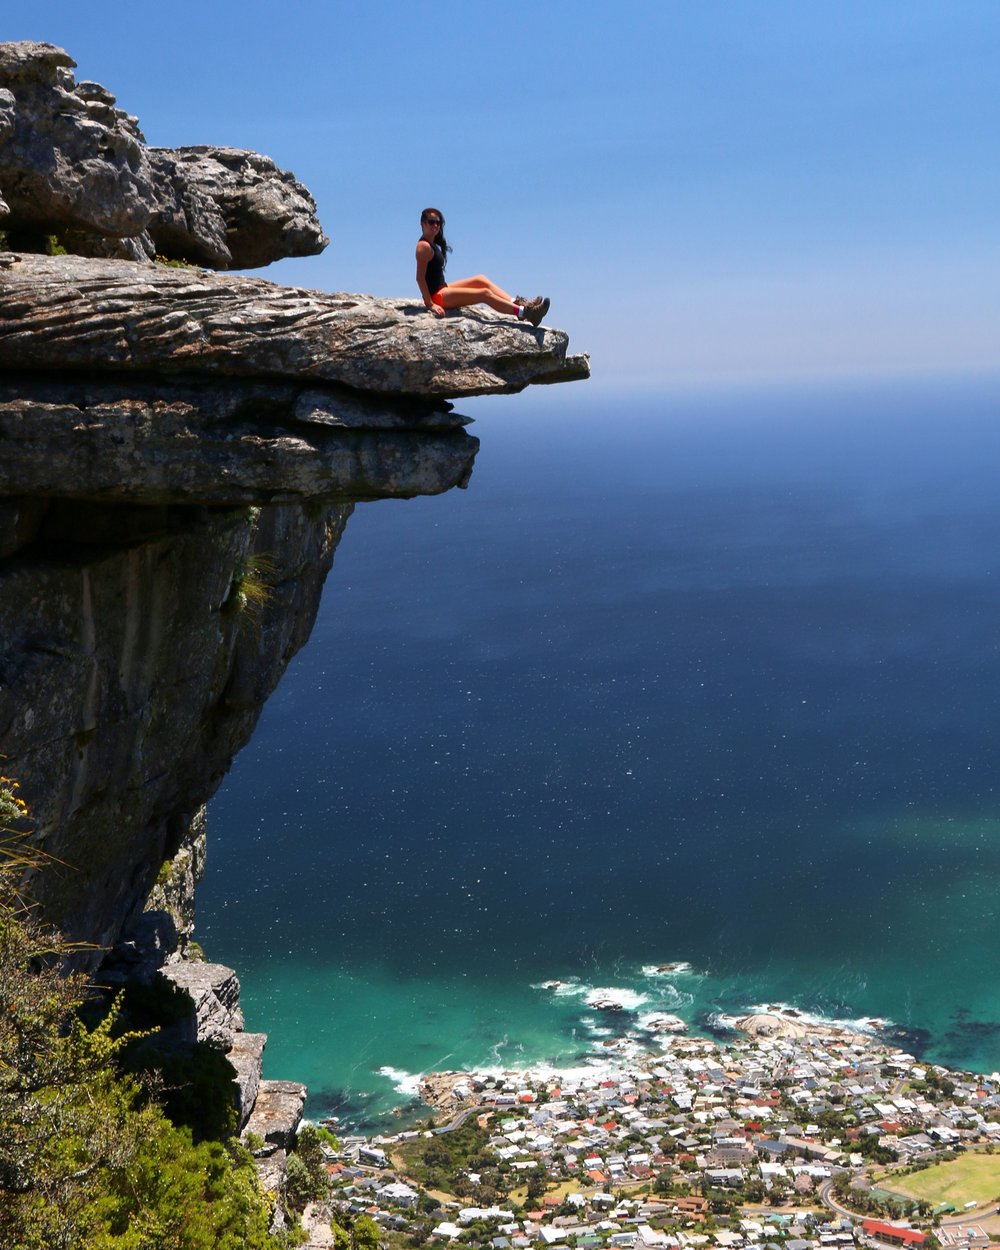 The Diving Board - Table Mountain - South Africa